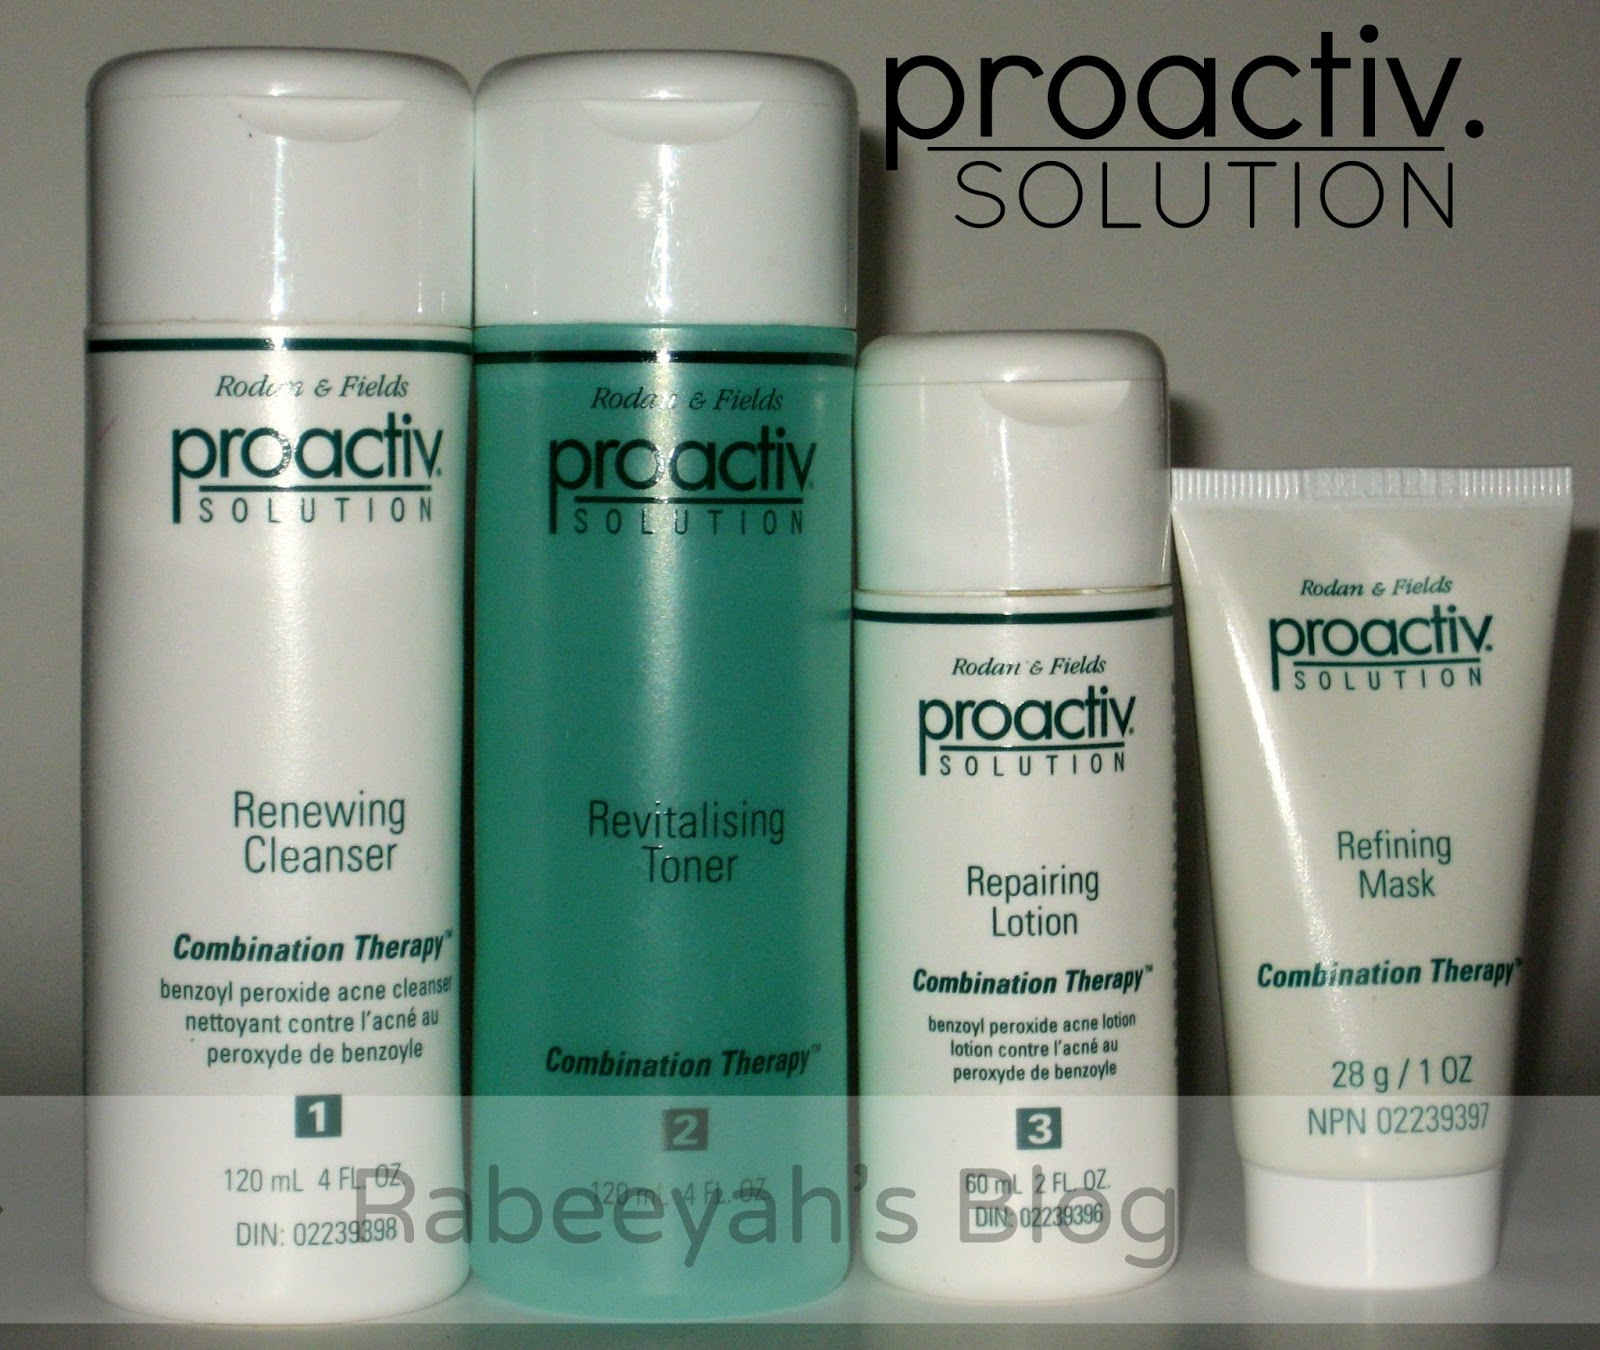 Proactiv Solution [Review]